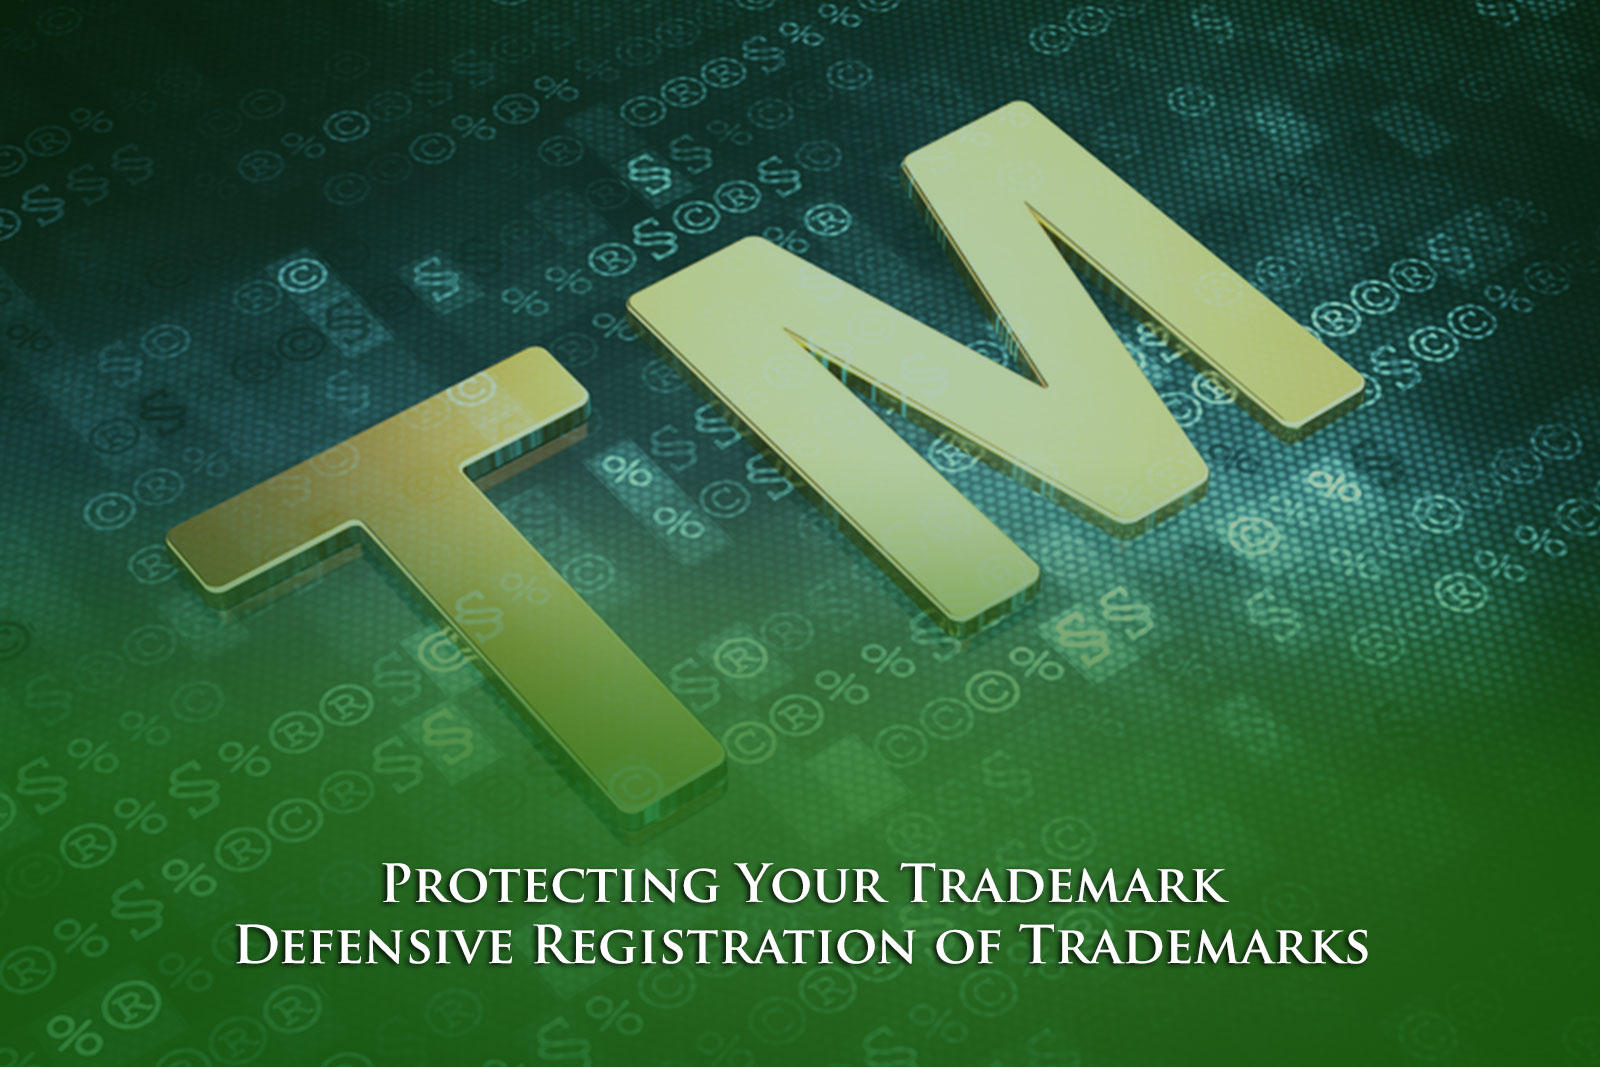 Protecting Your Trademark: Defensive Registration of Trademarks